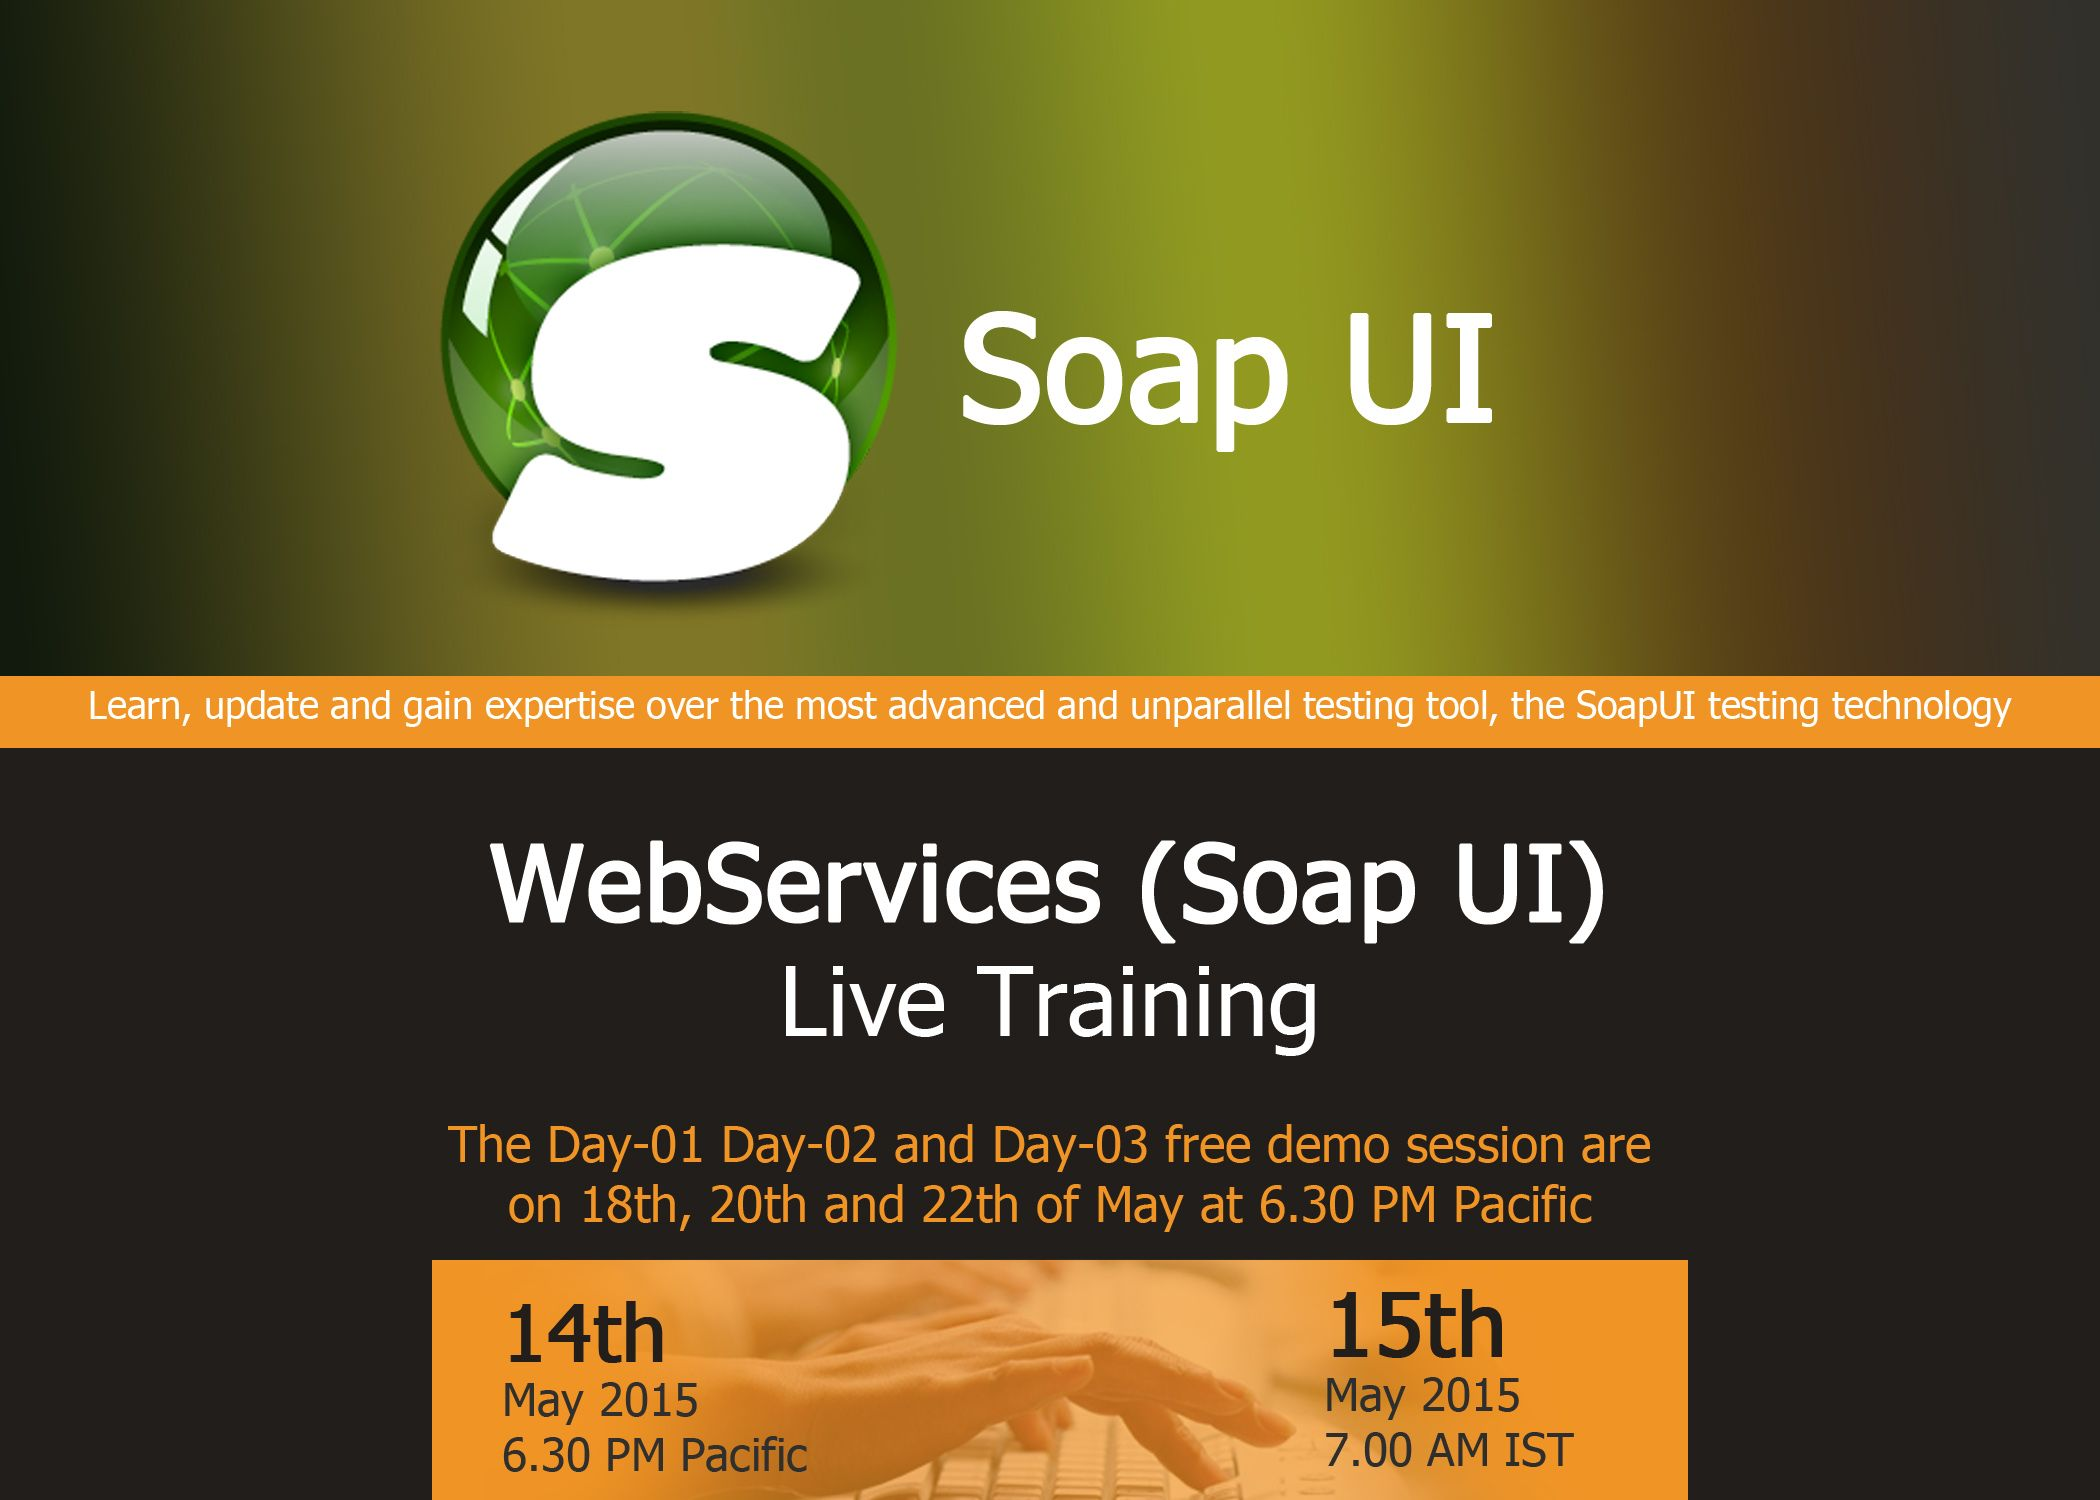 http://www.itelearn.com/events/webservices-soap-ui-live ...